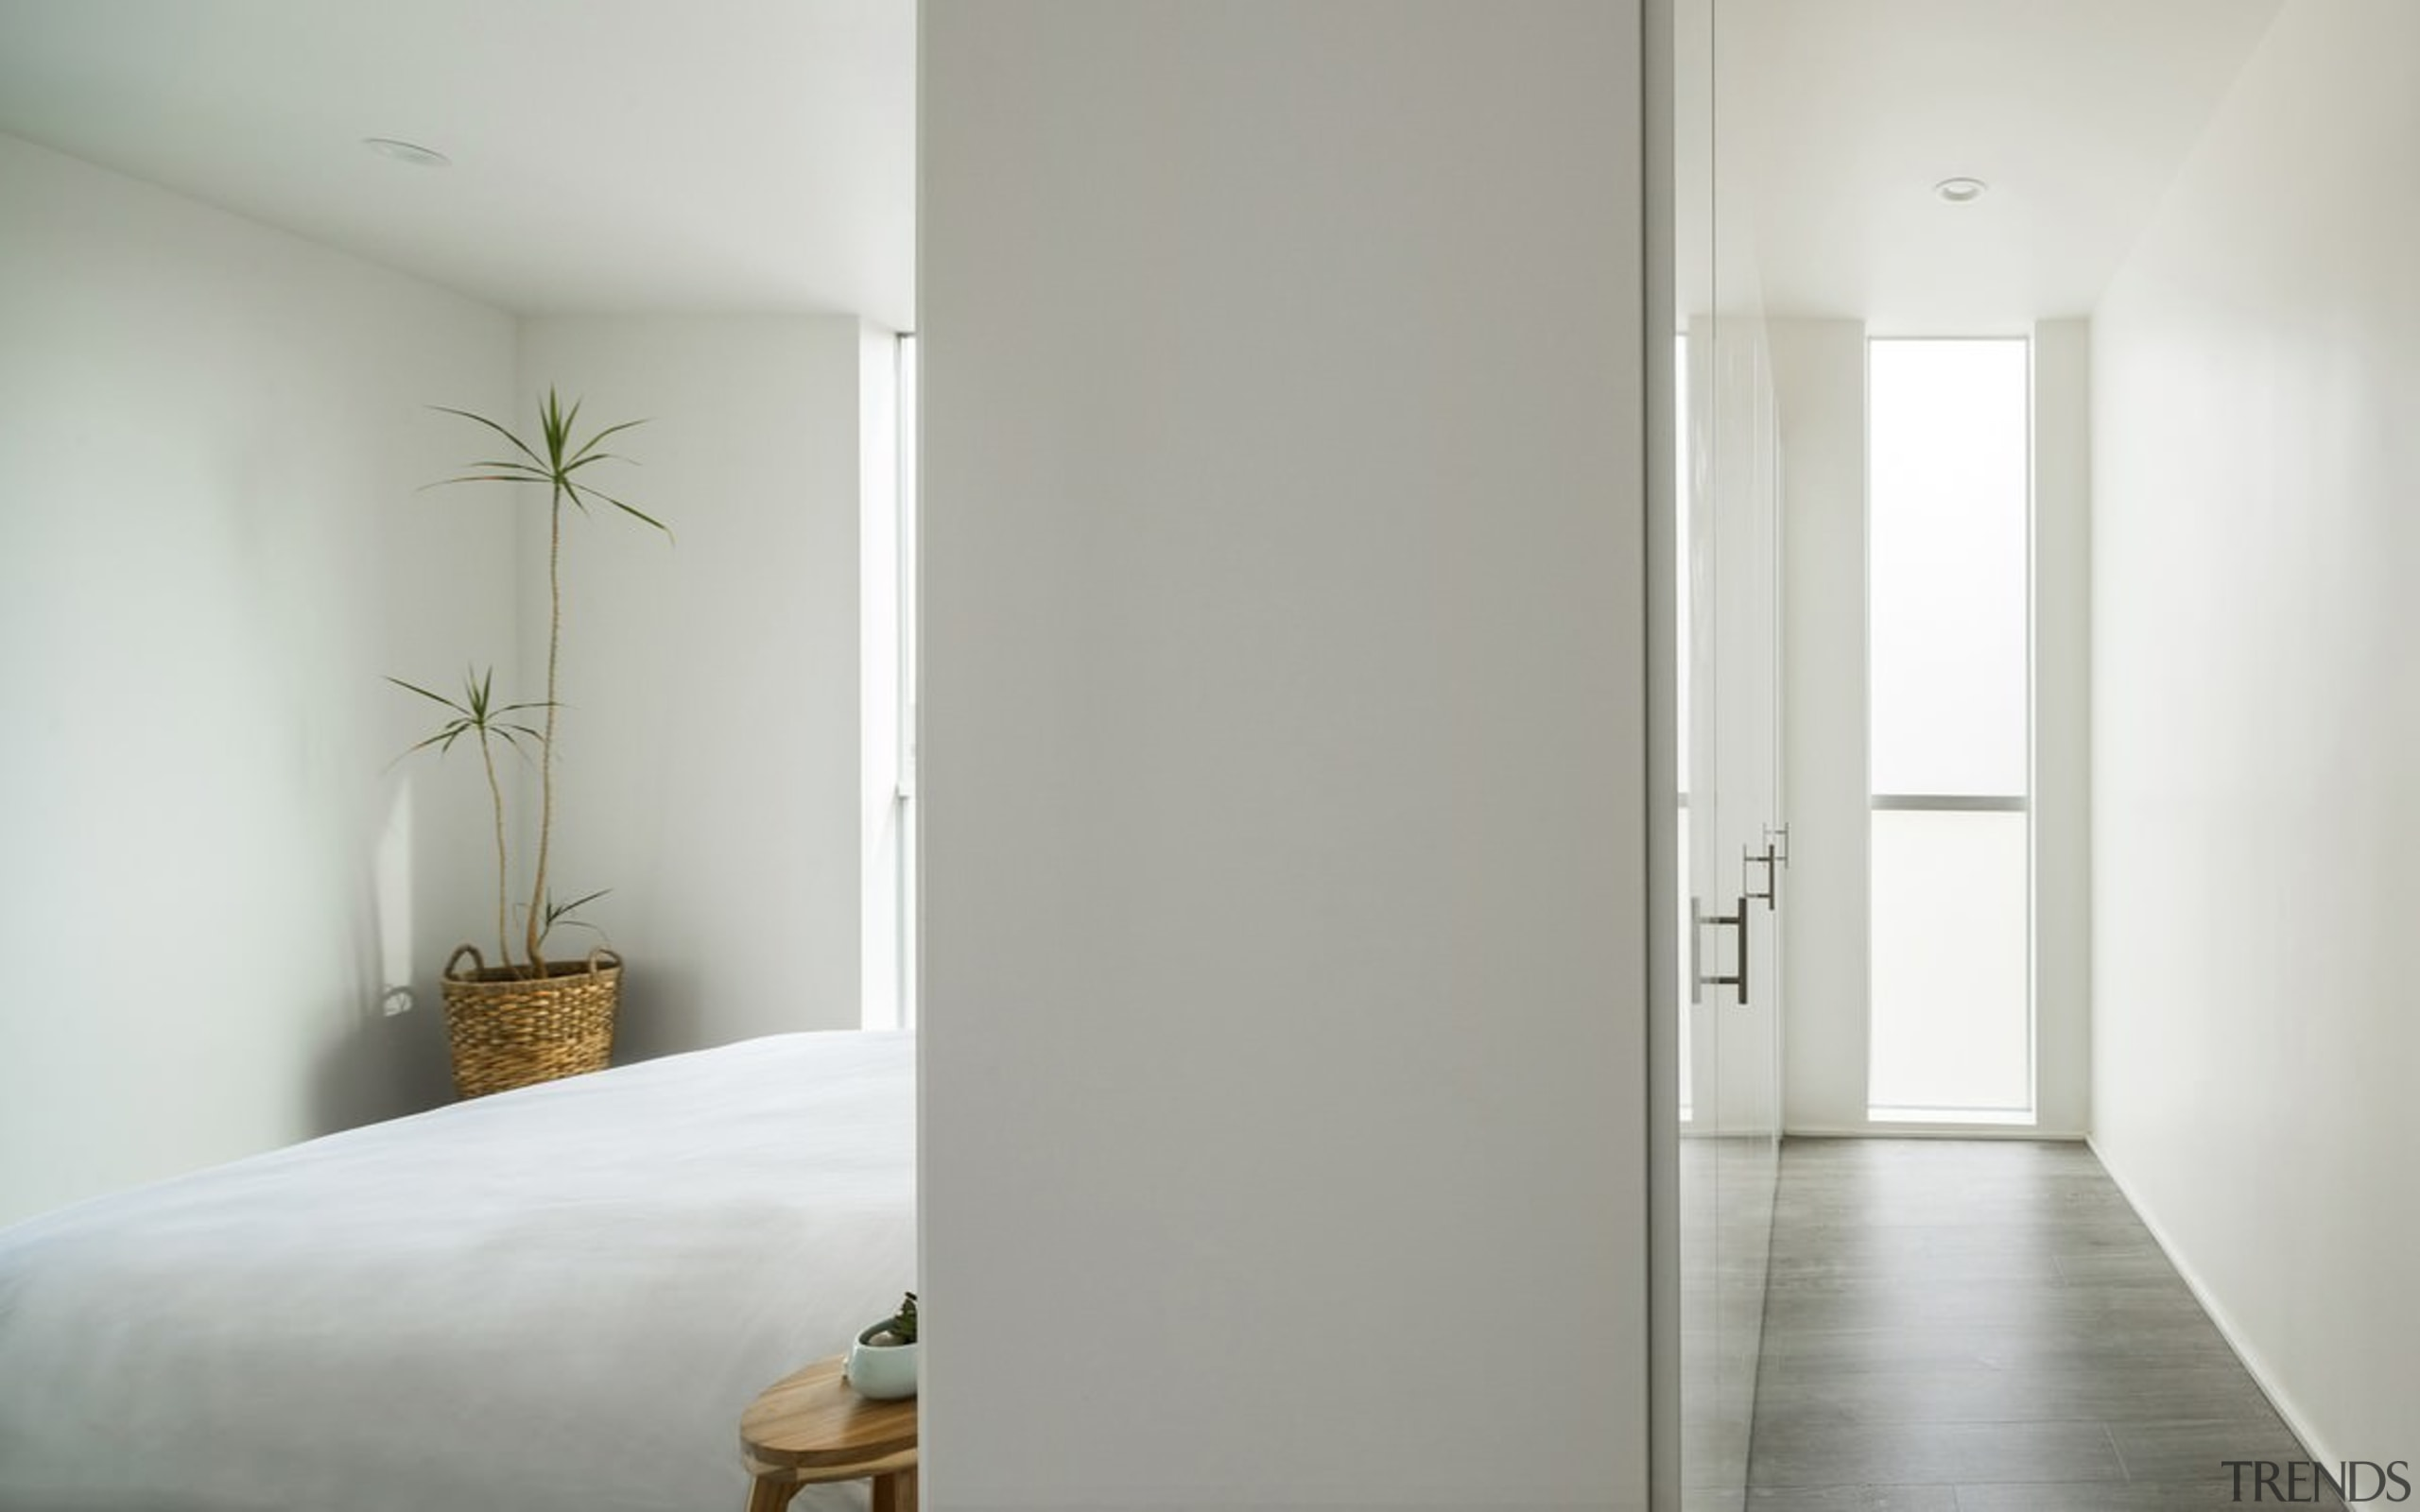 The apartments feature ample storage – an important apartment, architecture, ceiling, daylighting, door, floor, home, house, interior design, plaster, property, real estate, room, wall, window, wood, gray